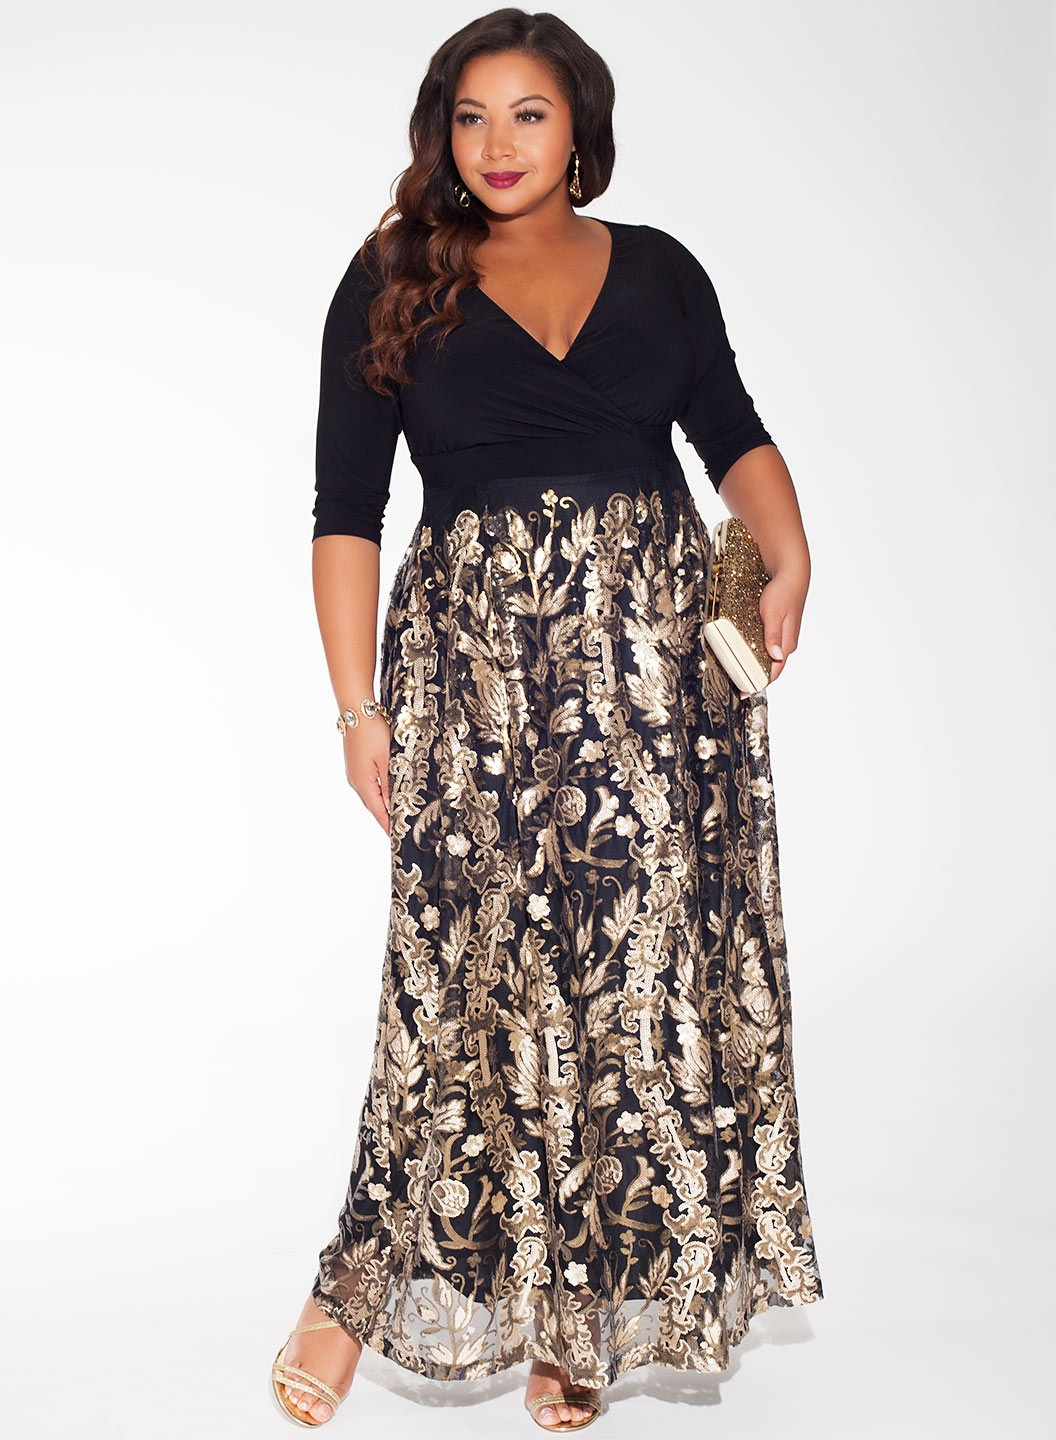 Elegant Plus Size Evening And Tail Dresses Gowns